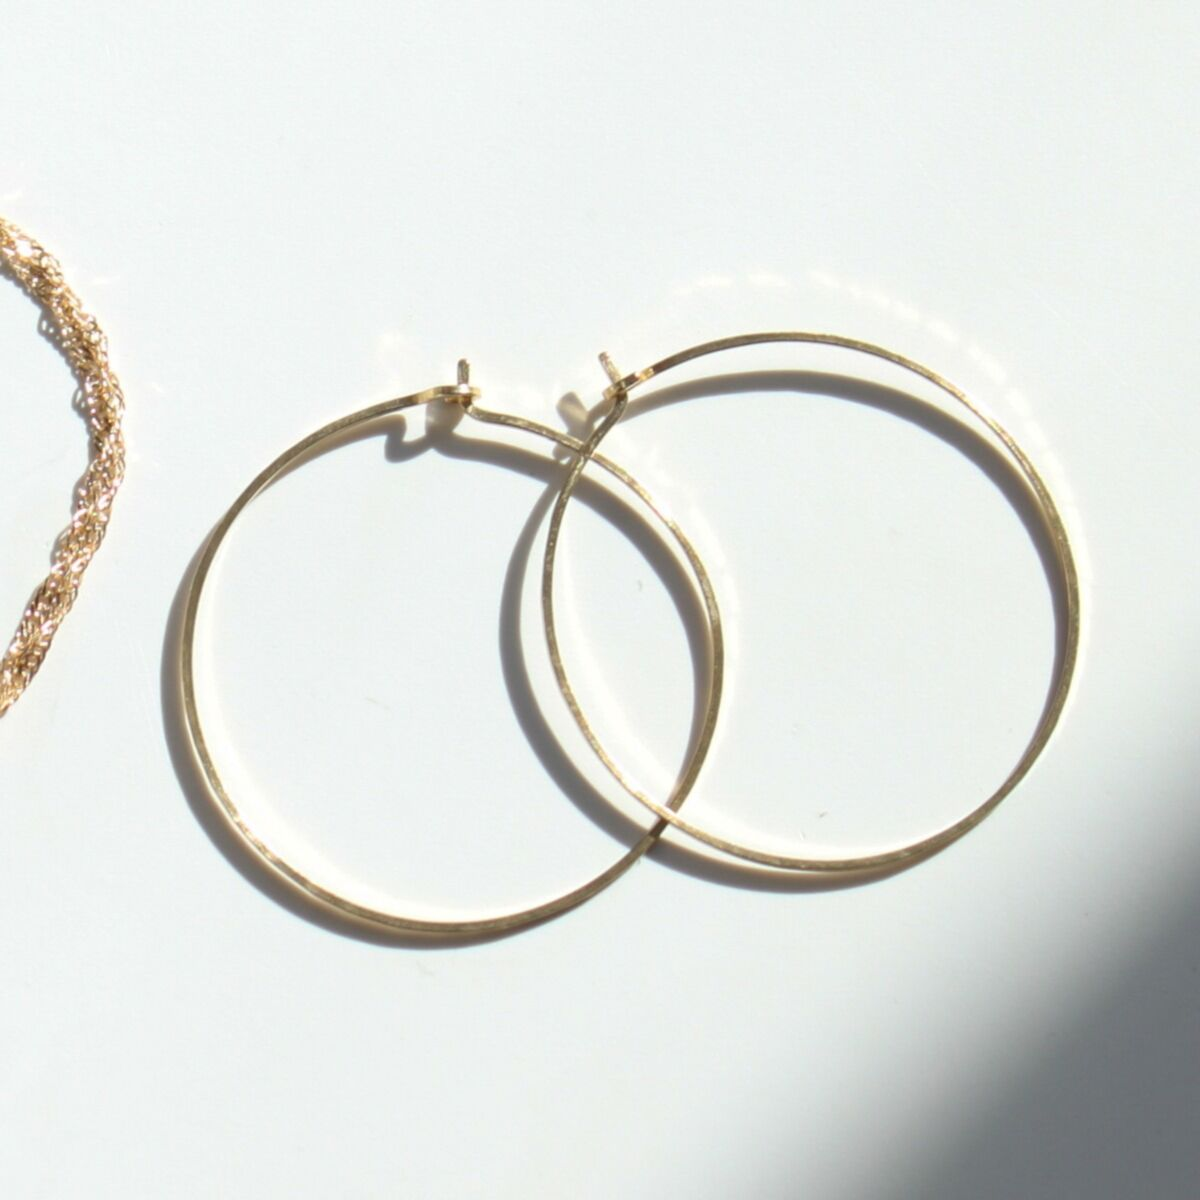 Big Hoop Dream Earrings, yellow gold image